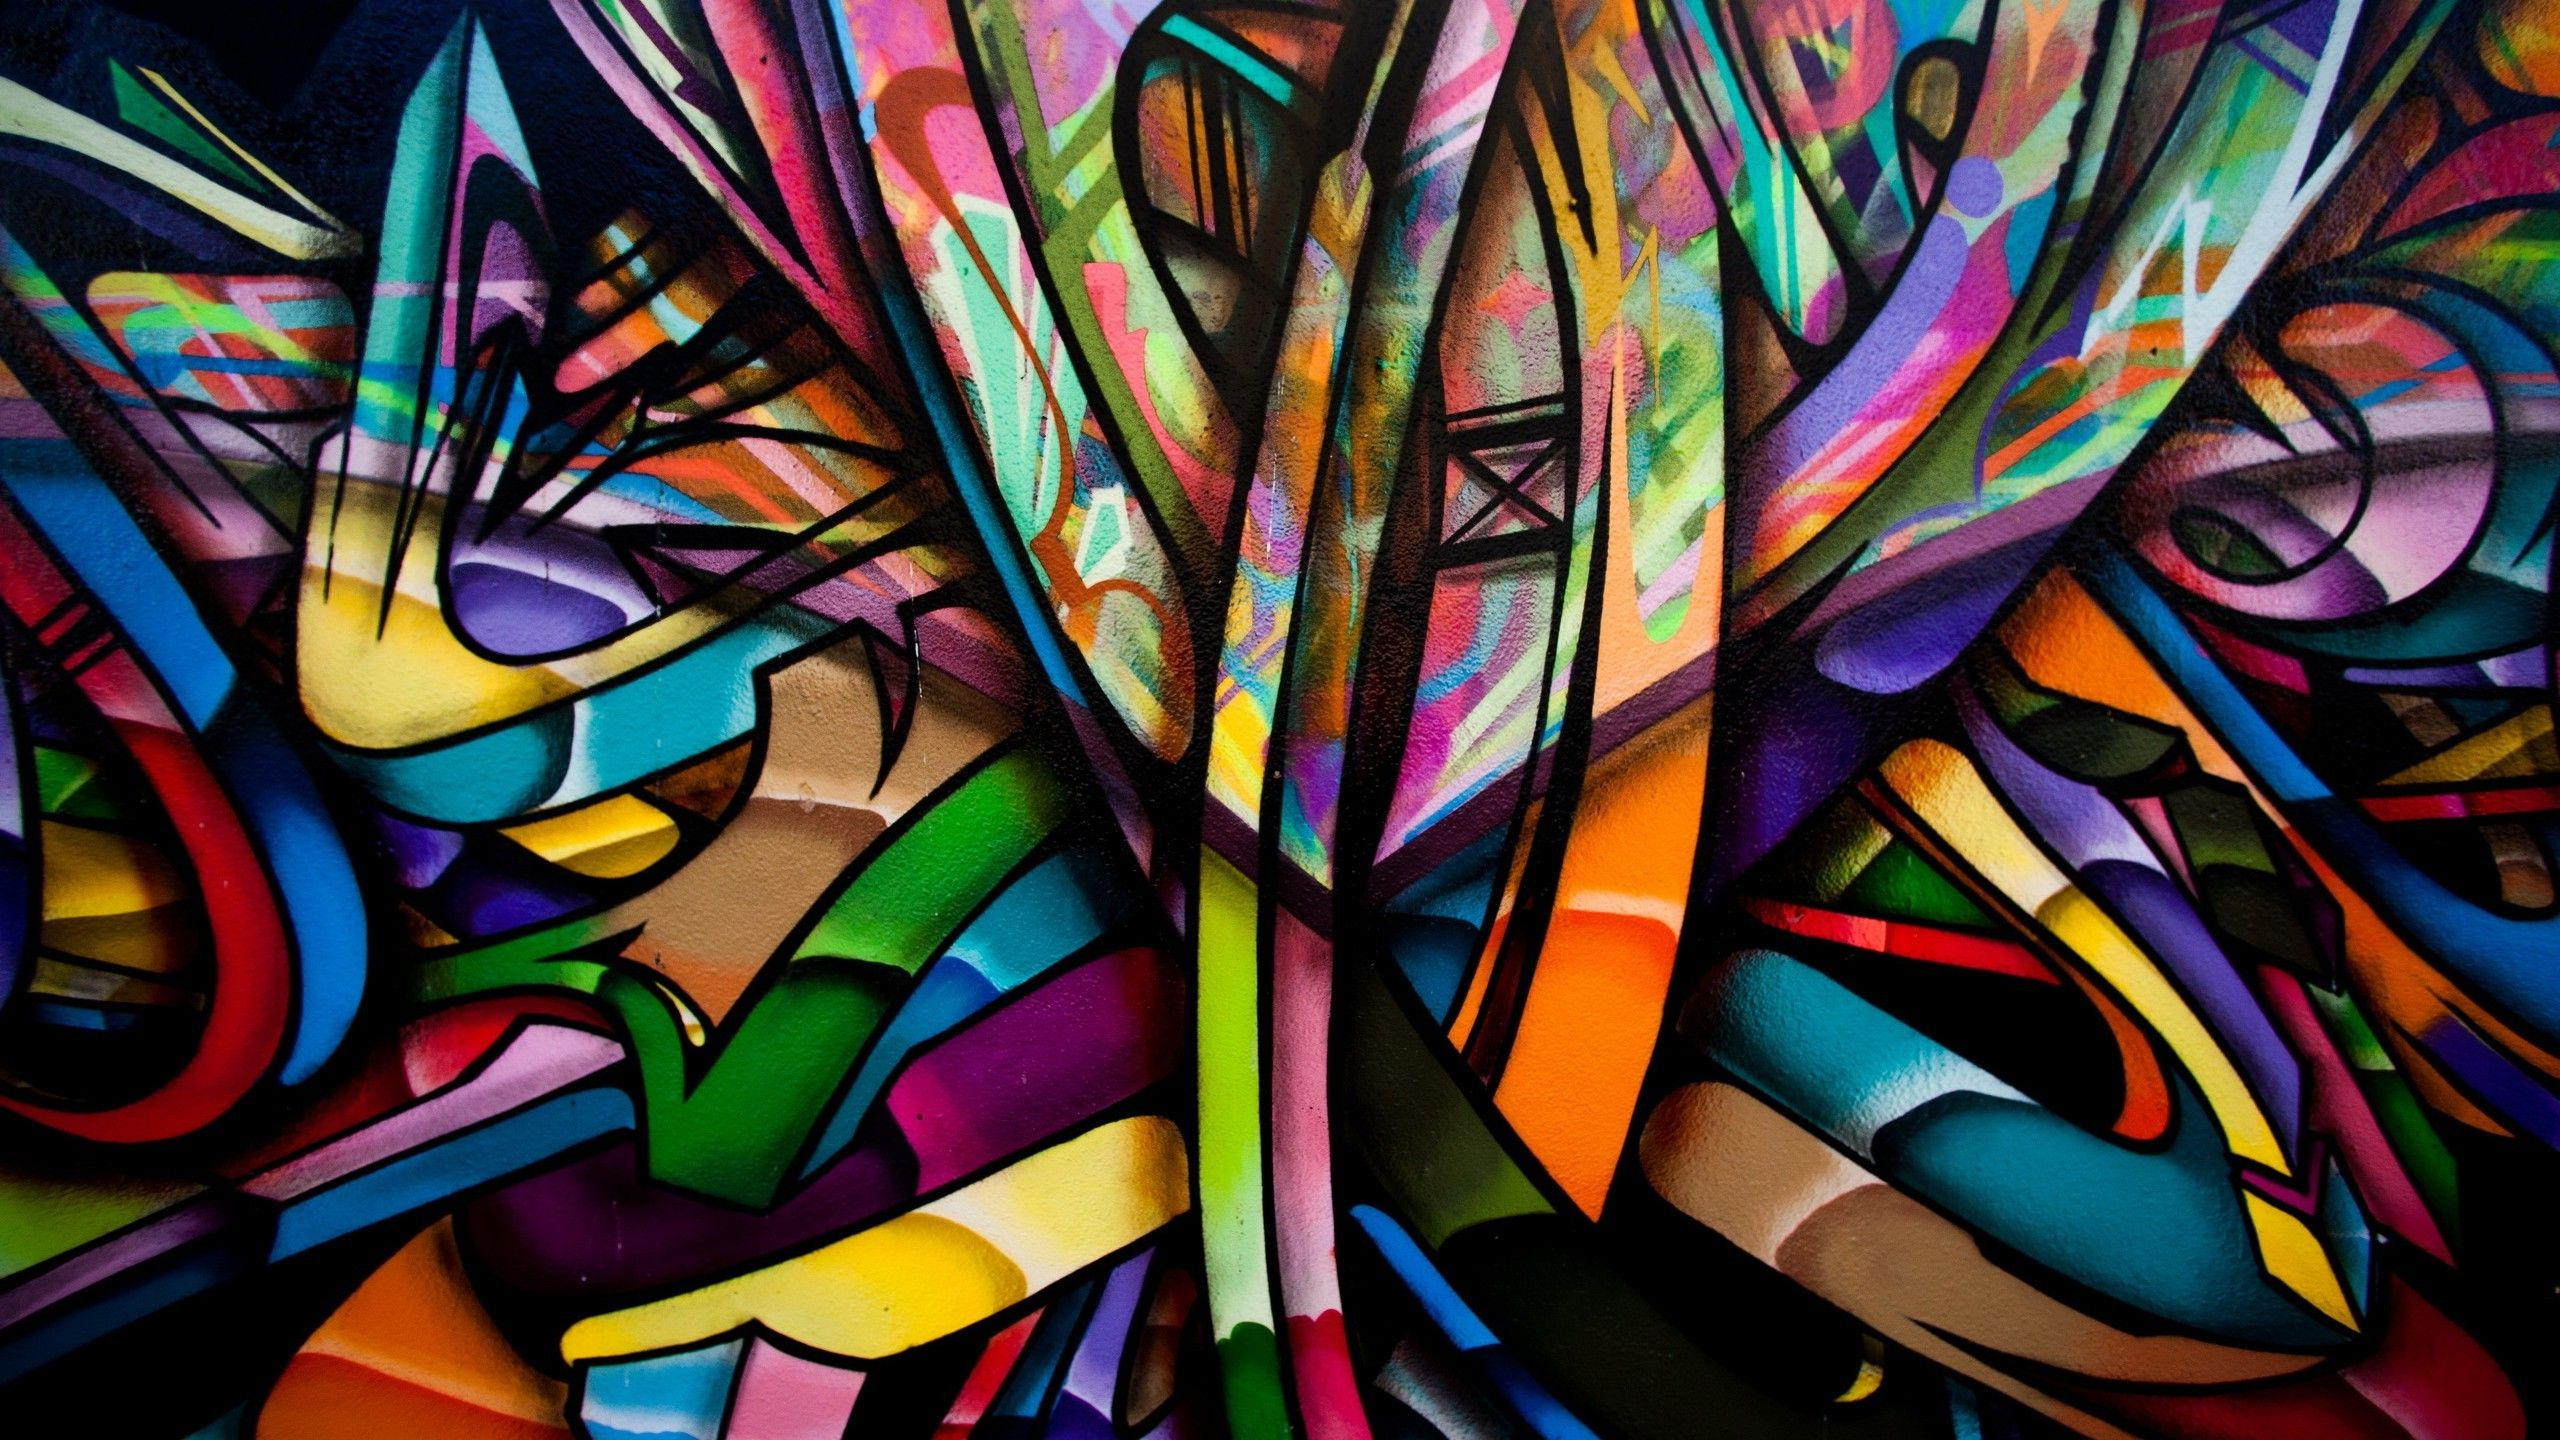 Abstract Colorful Graffiti Walls Artwork Painting Wallpapers Hd Abstrak Graffiti Seni